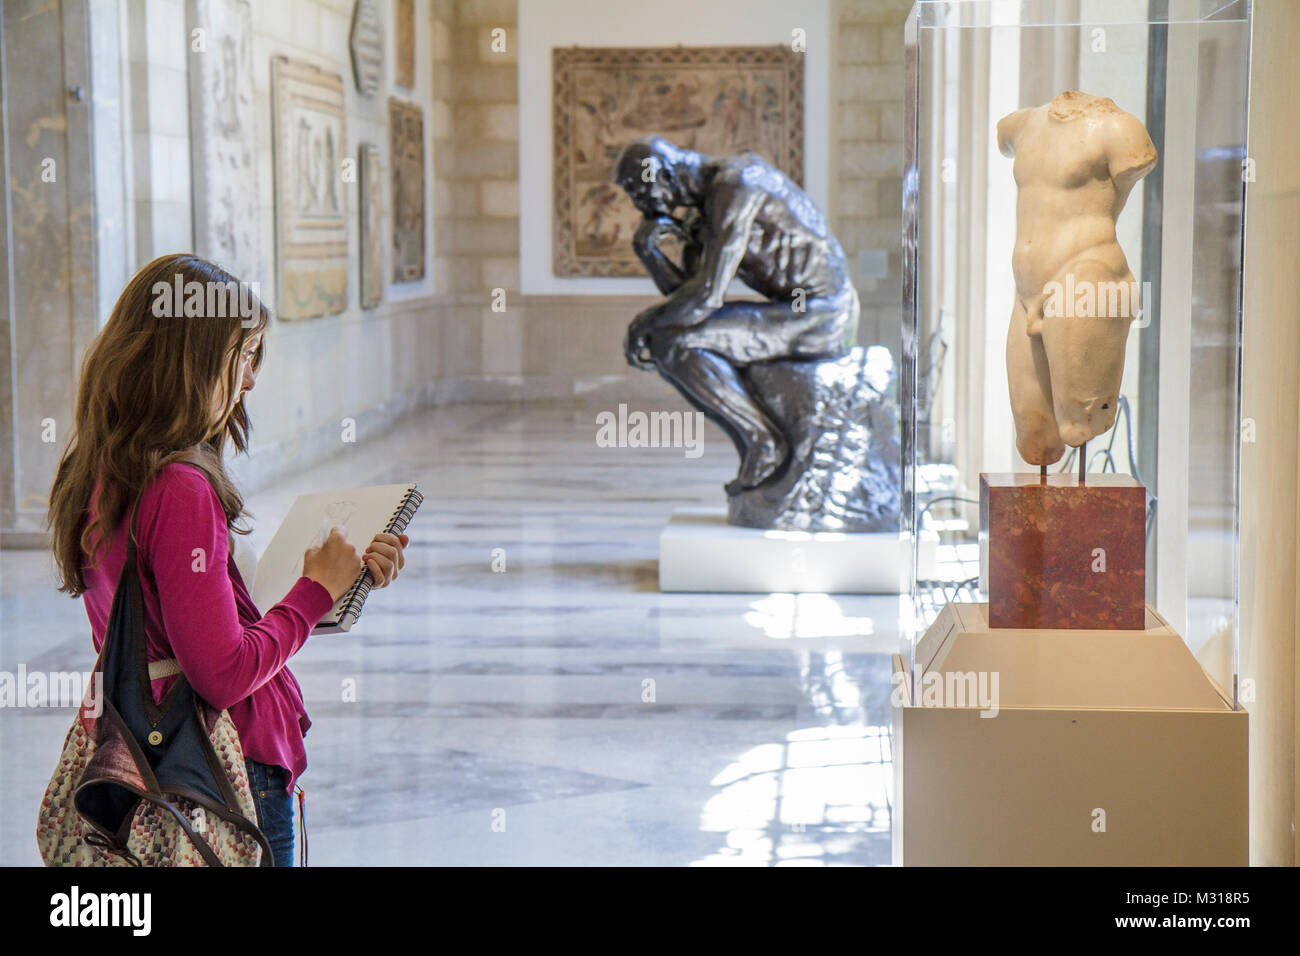 Baltimore Maryland Baltimore Museum of Art Wyman Park gallery exhibition collection sculpture Rodin Thinker torso - Stock Image